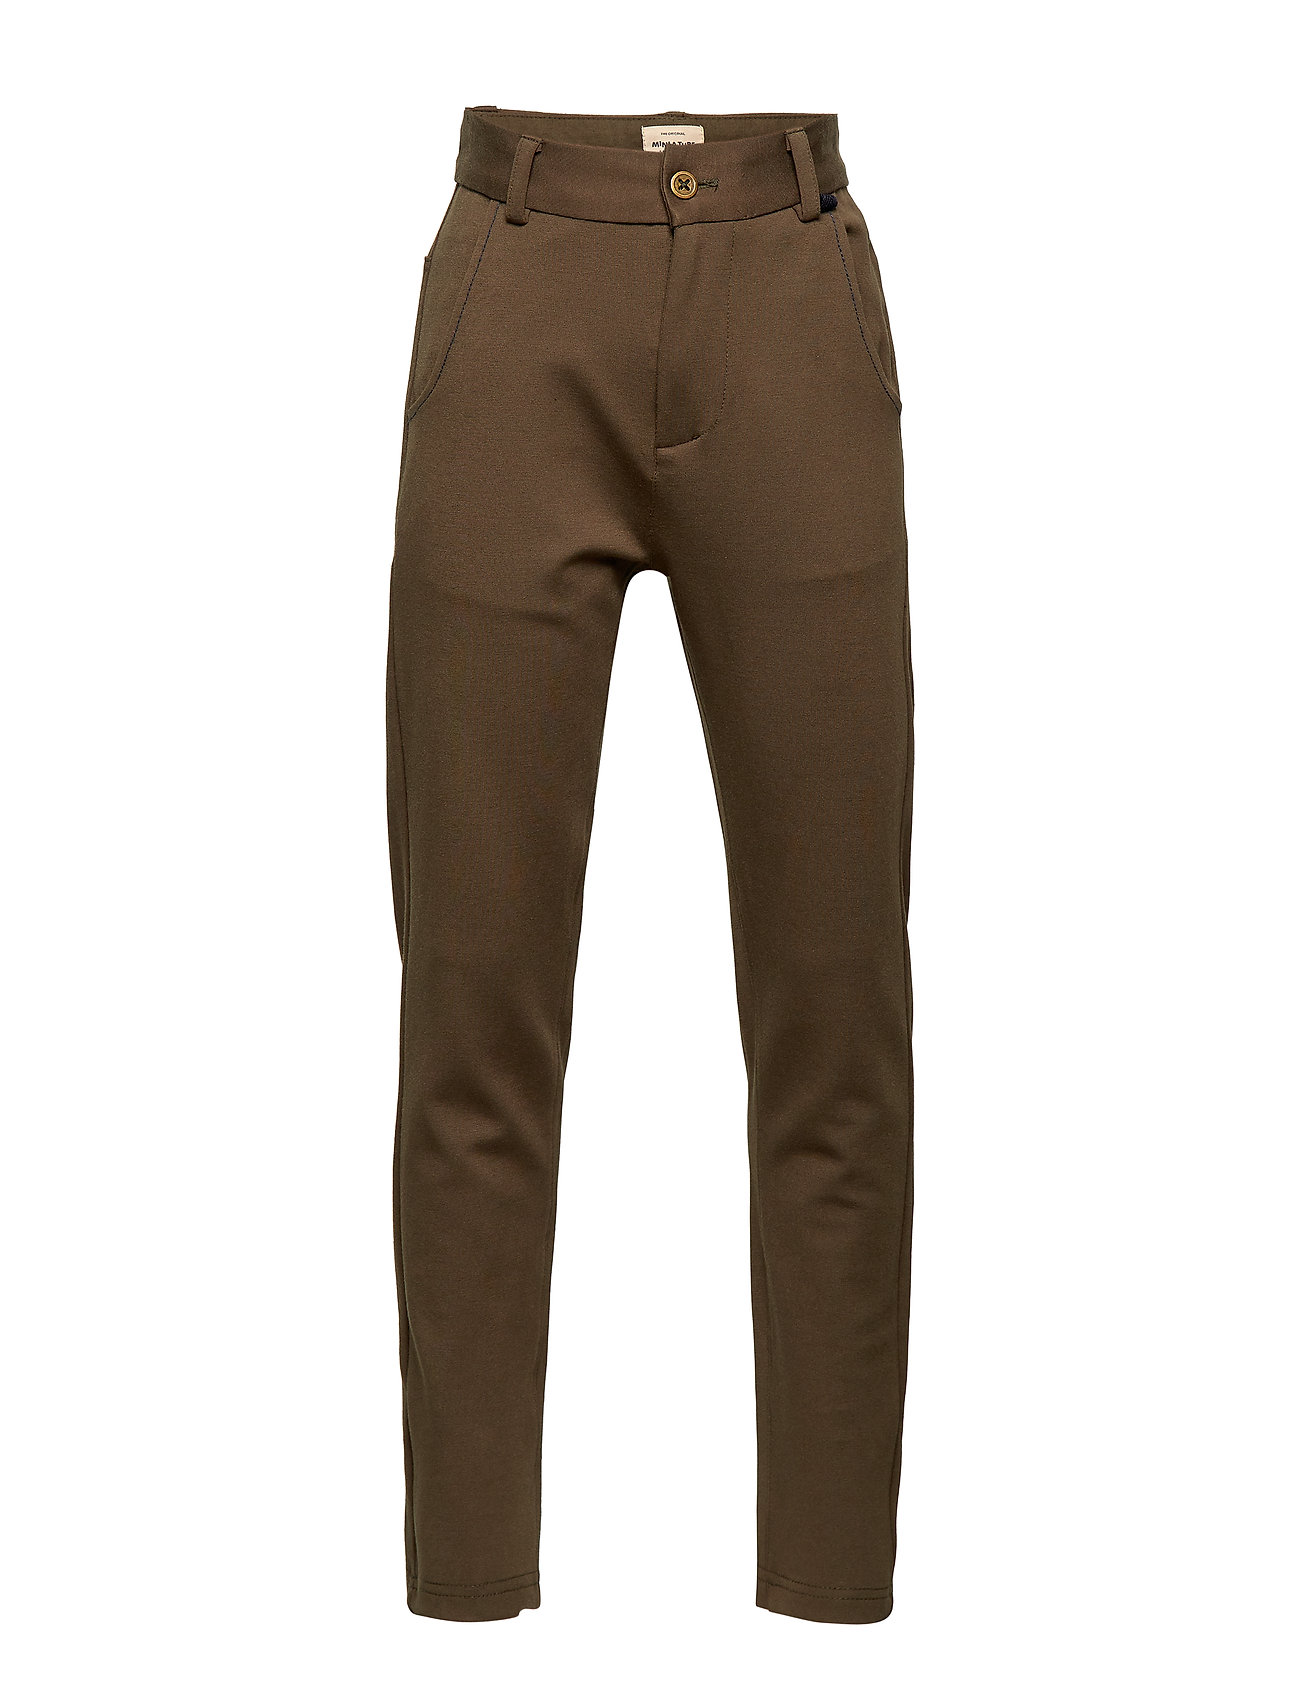 Mini A Ture Sigvart Pants, K - BURNT OLIVE